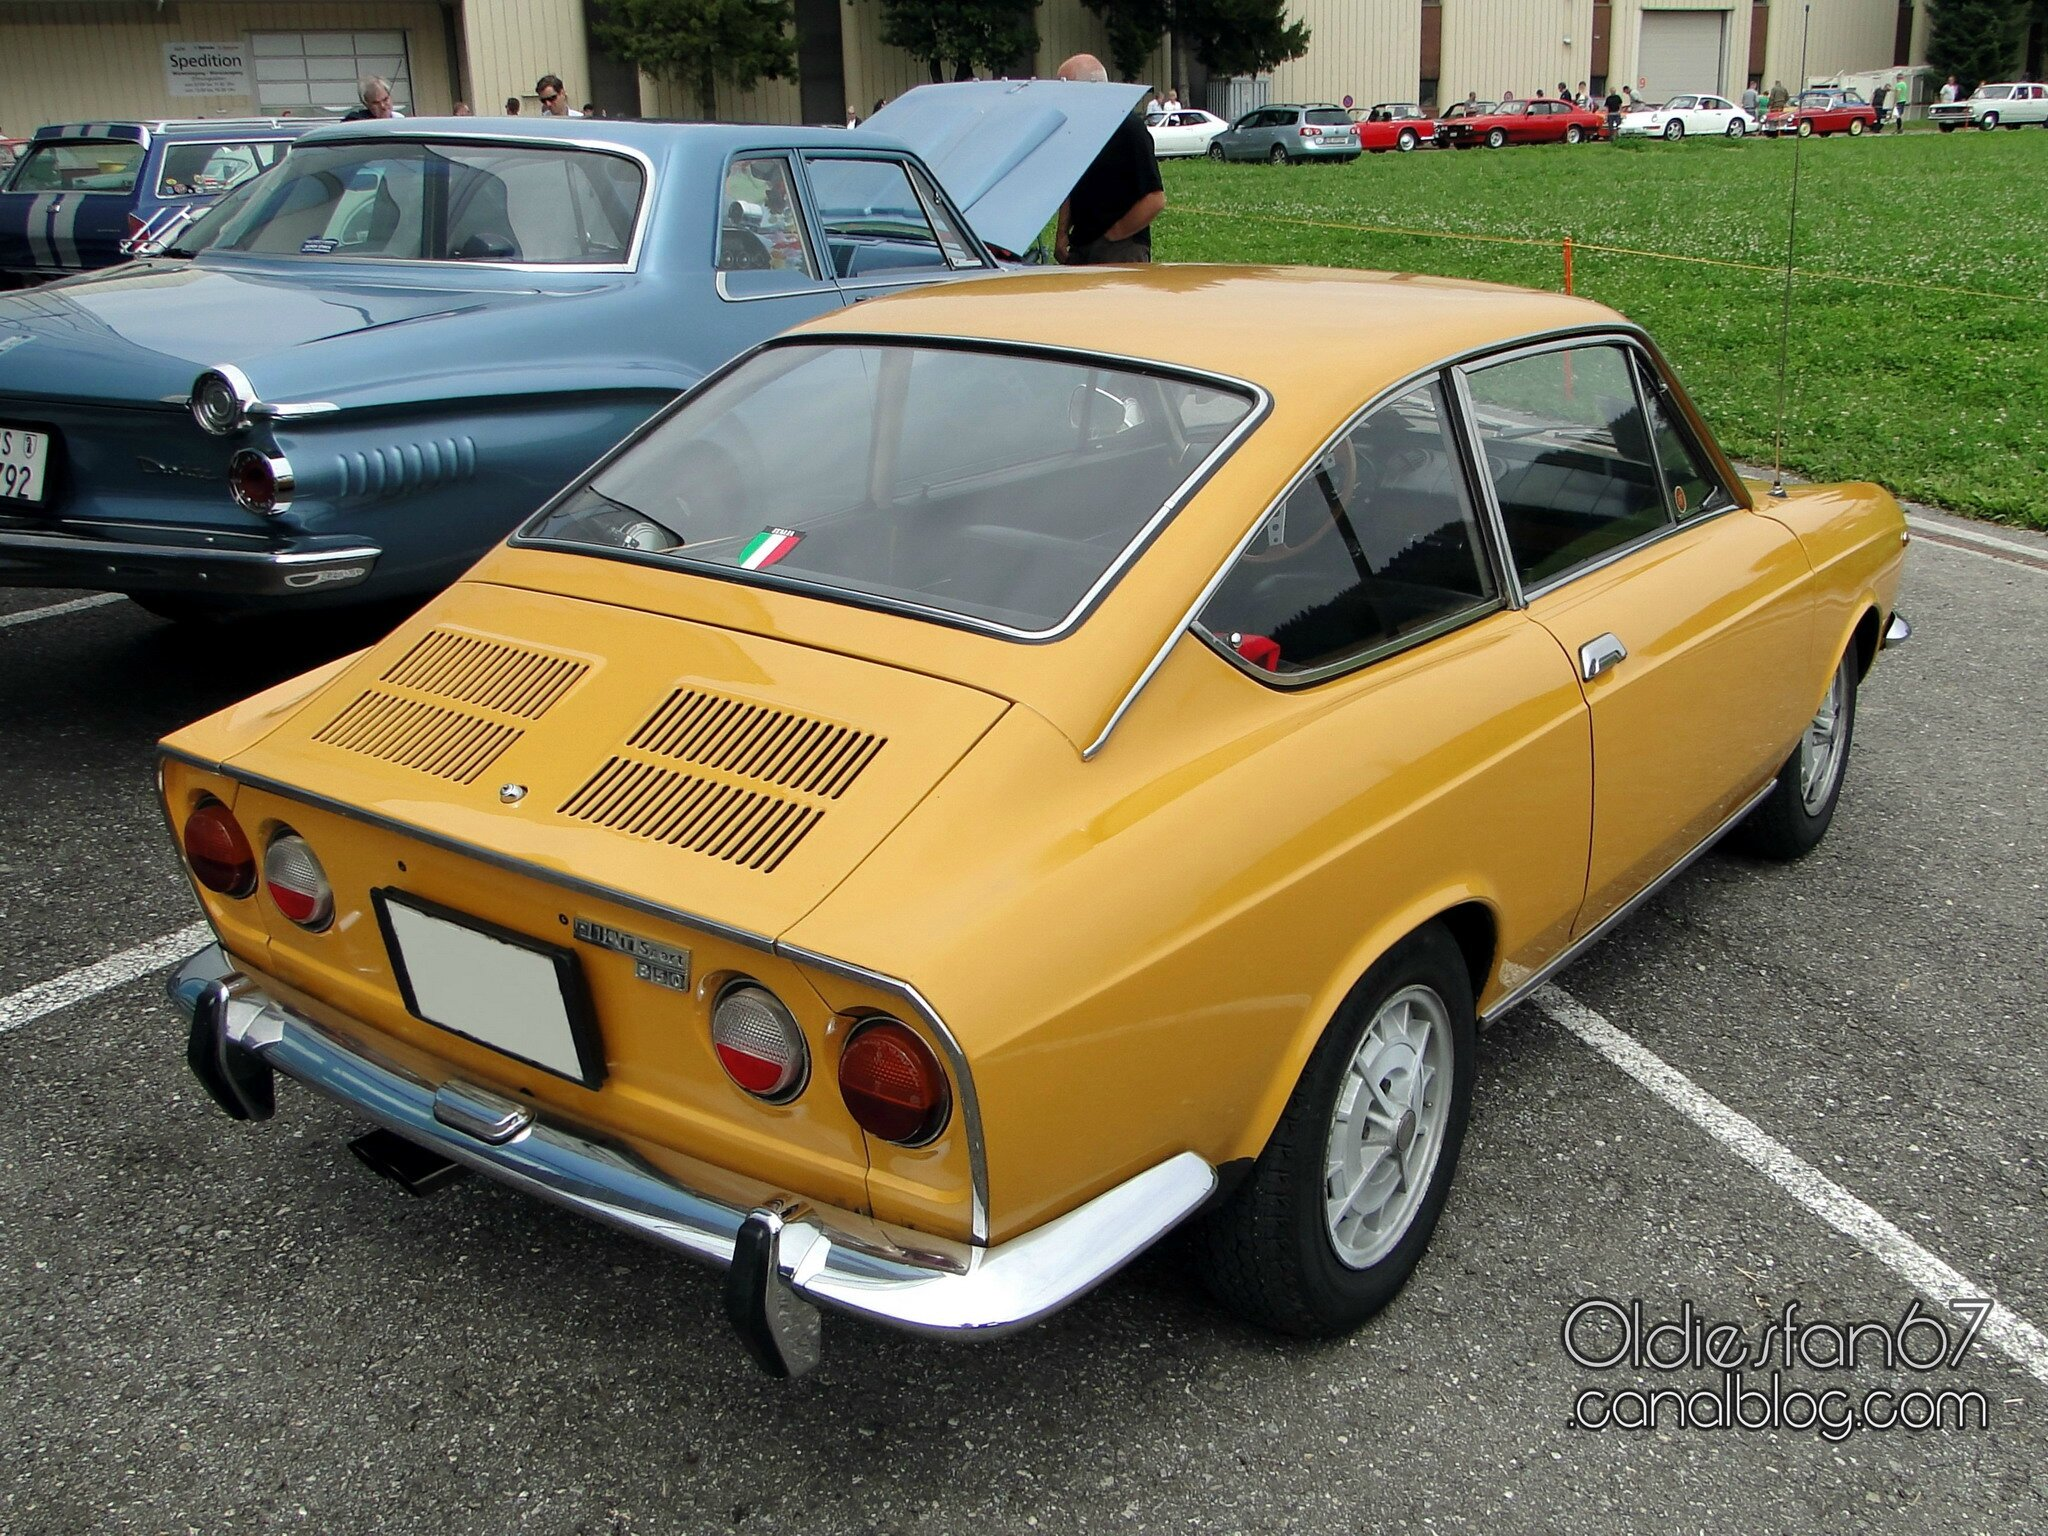 fiat 850 sport coupe 3e s rie 1971 1972 oldiesfan67 mon blog auto. Black Bedroom Furniture Sets. Home Design Ideas